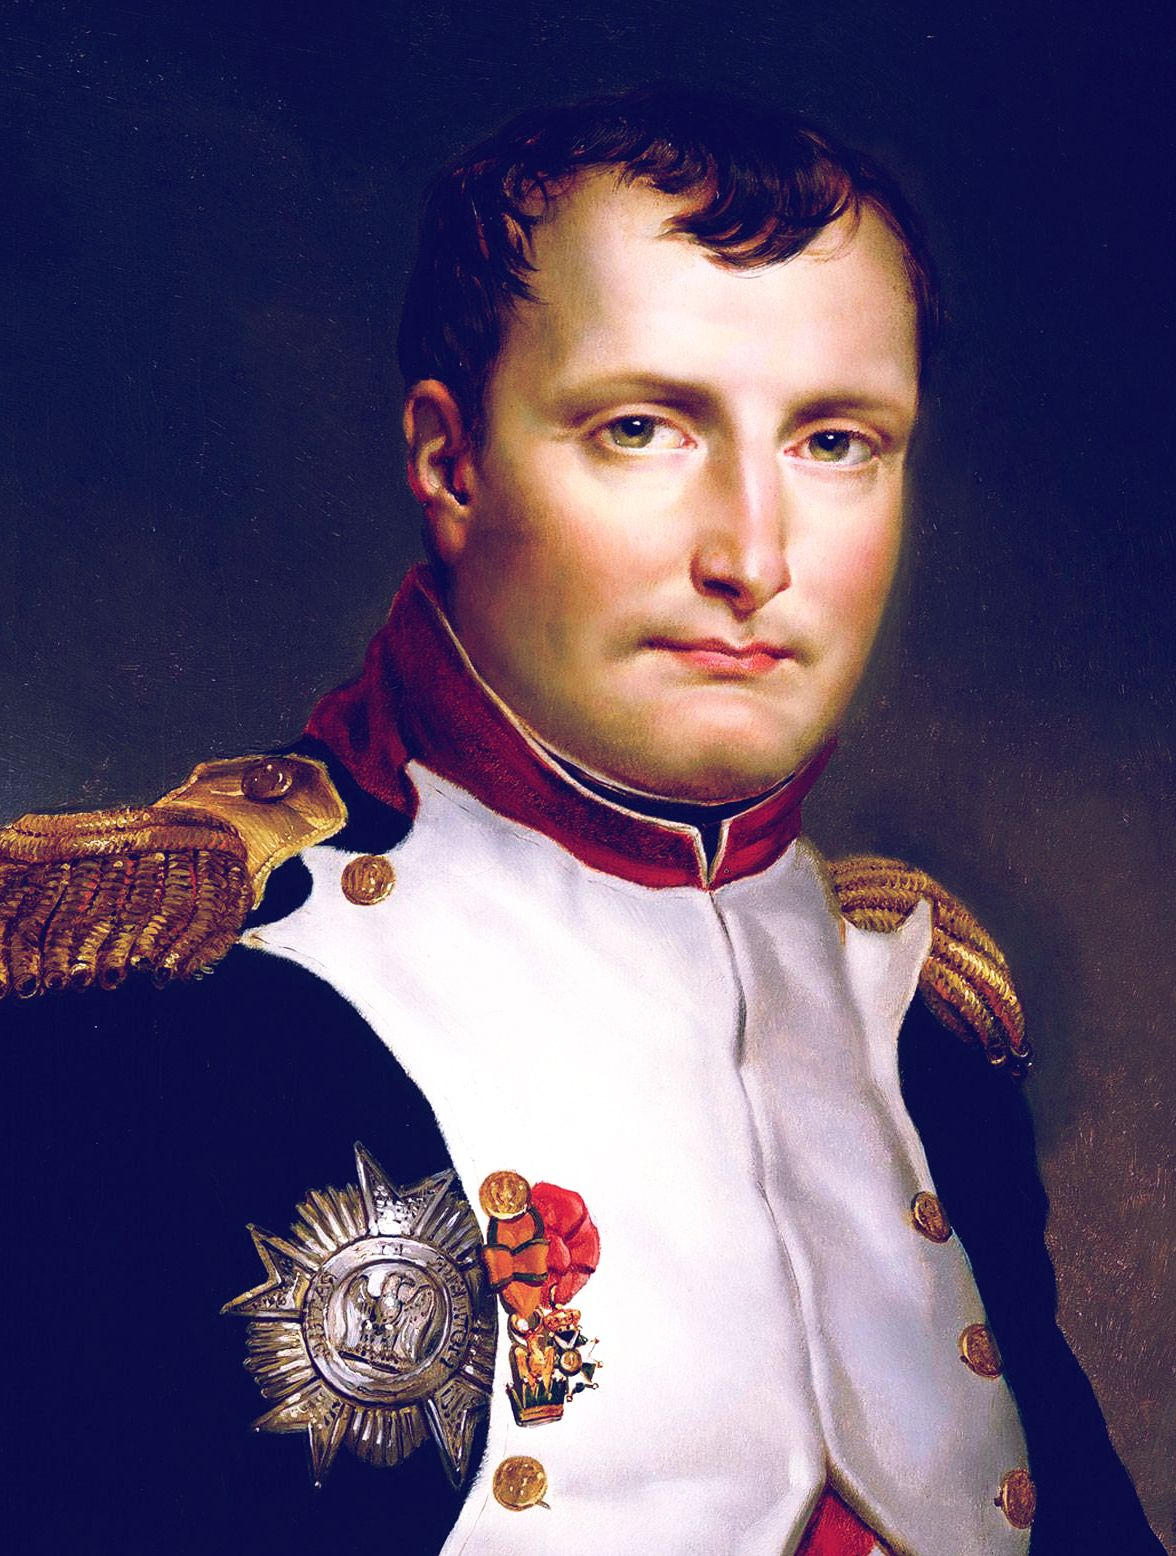 louis napoleon essay This essay louis napoleon bonaparte and other 64,000+ term papers, college essay examples and free essays are available now on reviewessayscom autor: review • january 18, 2011 • essay • 1.